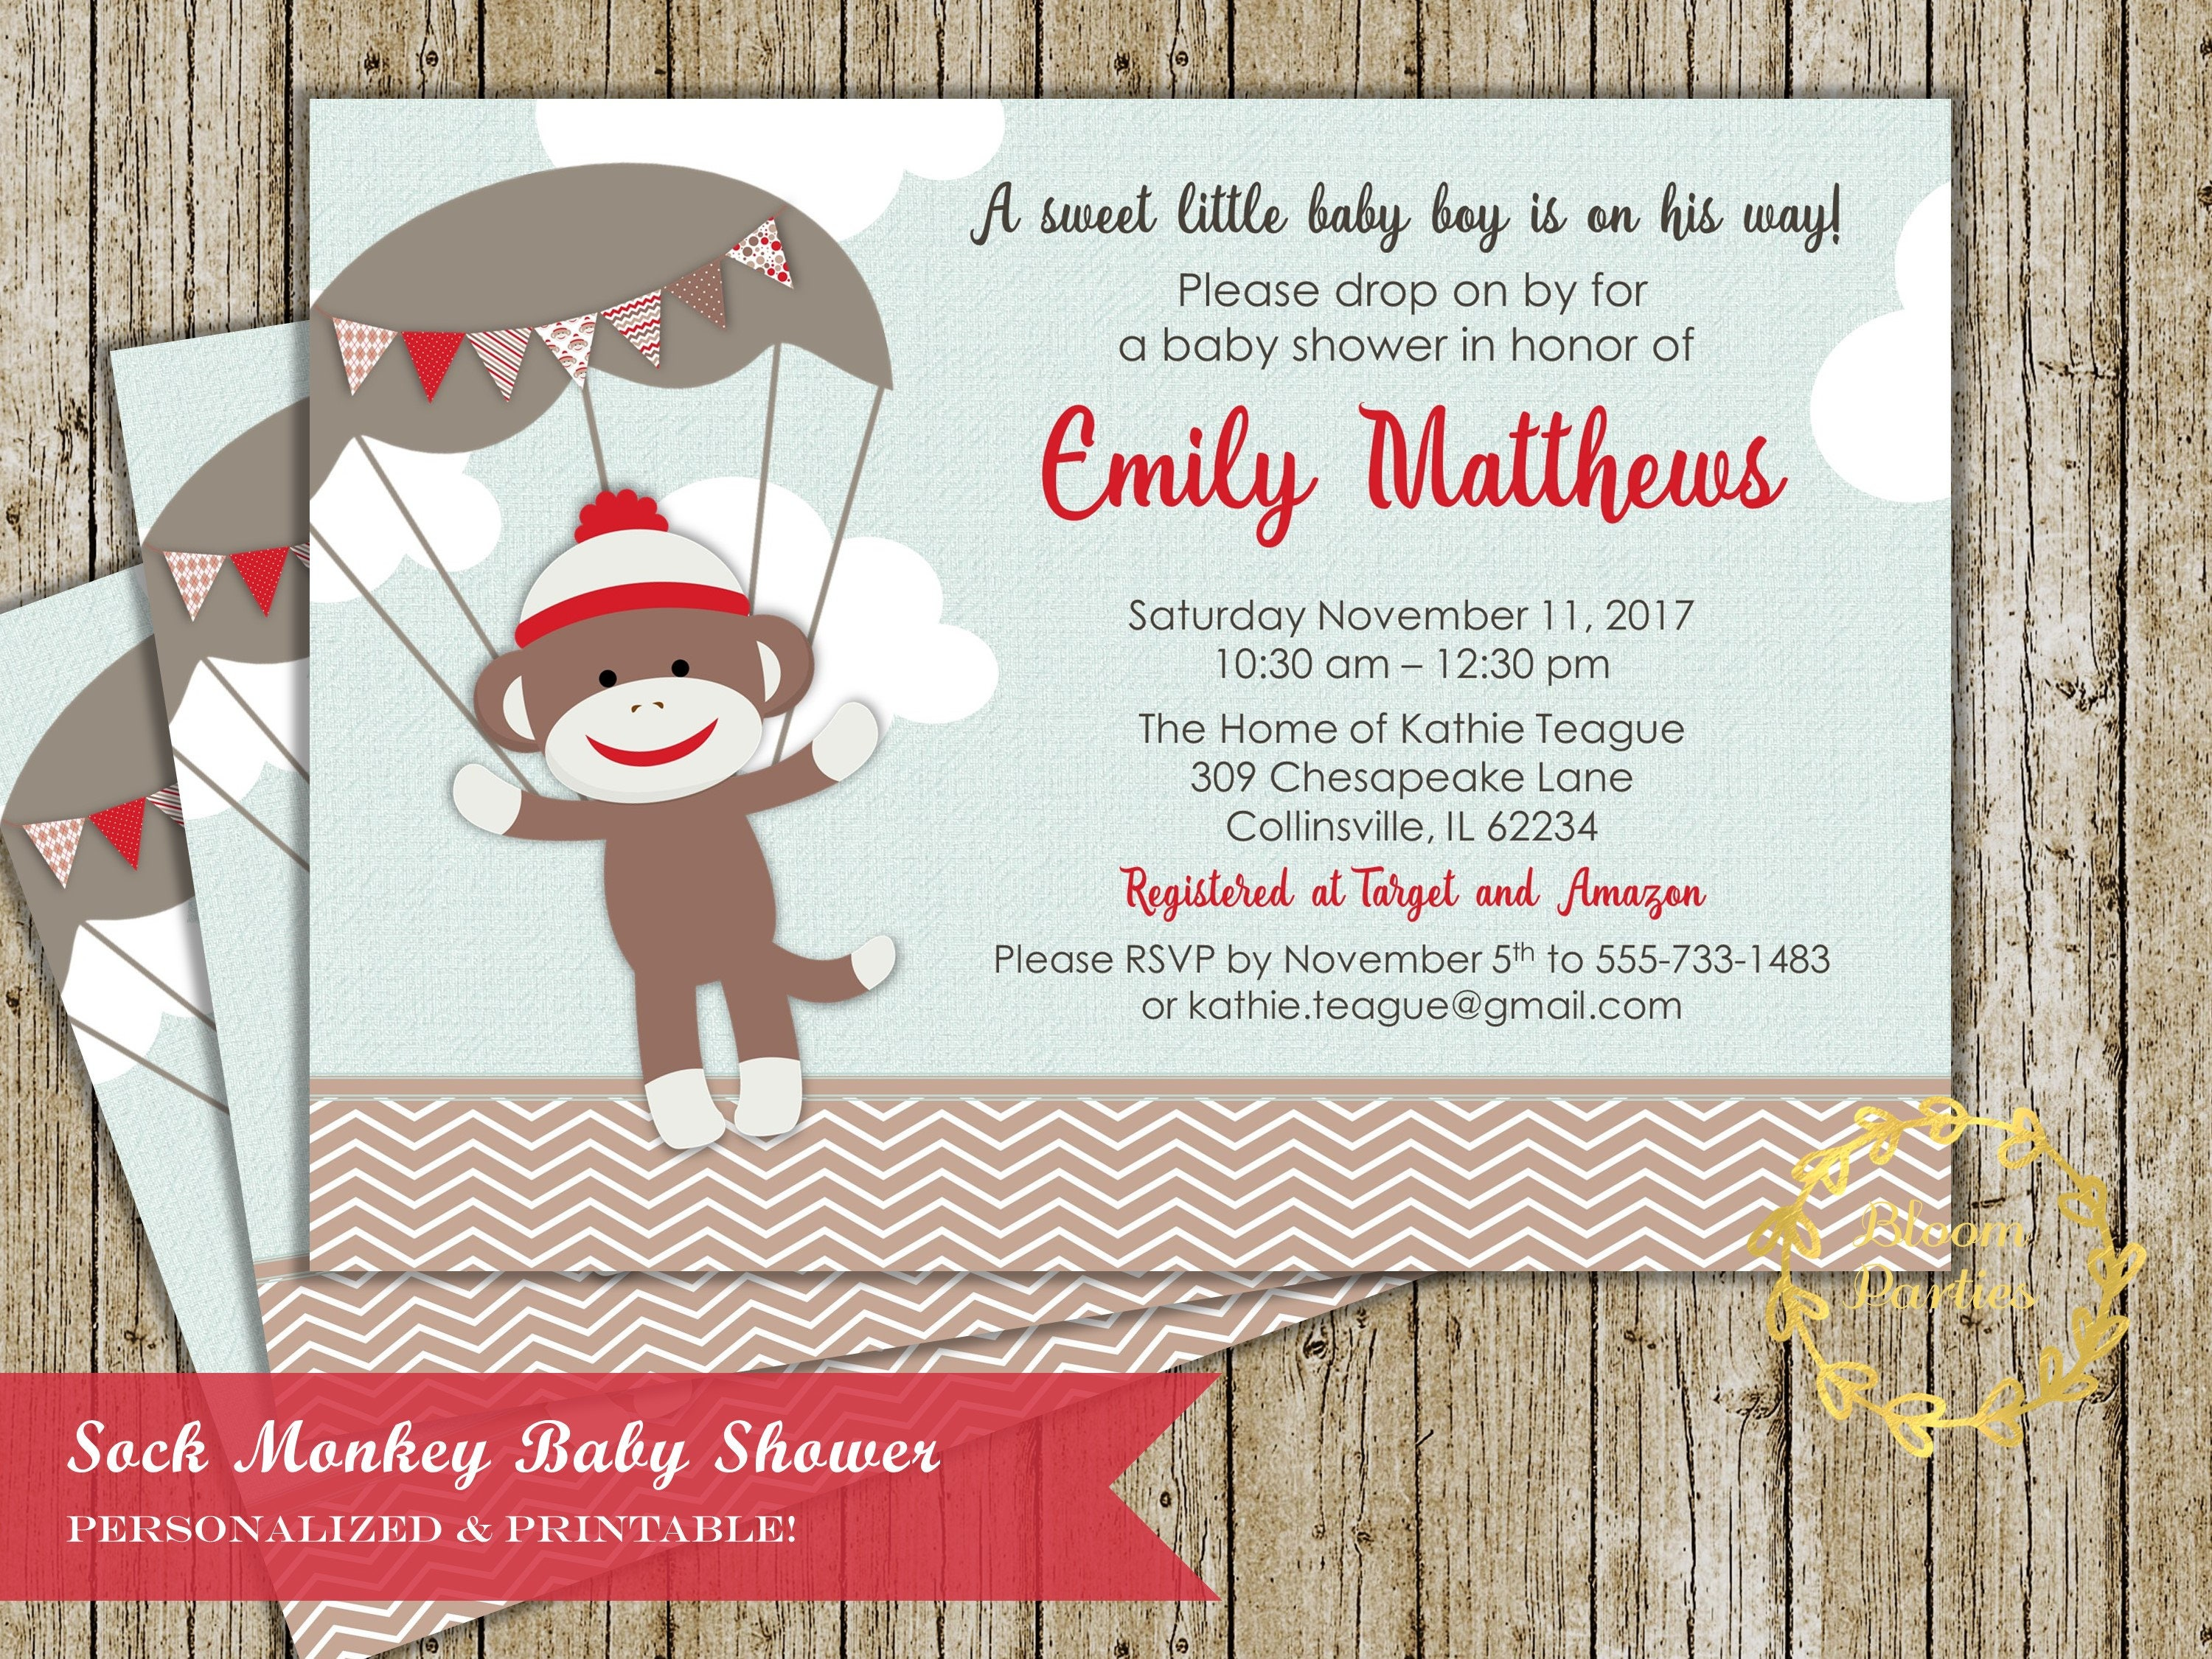 Sock Monkey Baby Shower Baby Boy Shower Invitations Sock